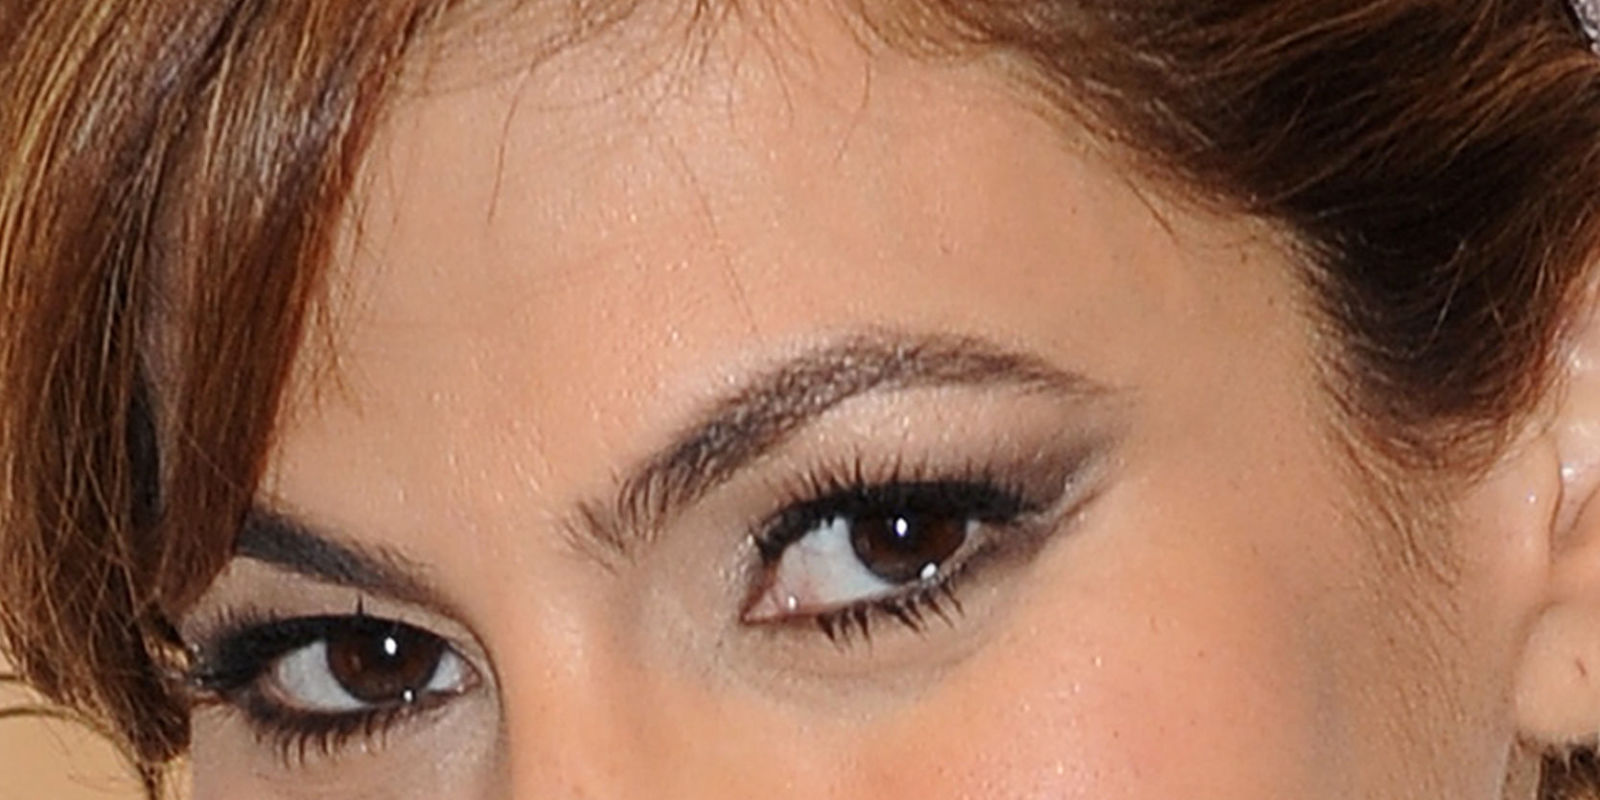 What Your Eyebrows Say About You - Eyebrow Shape Reveals ...